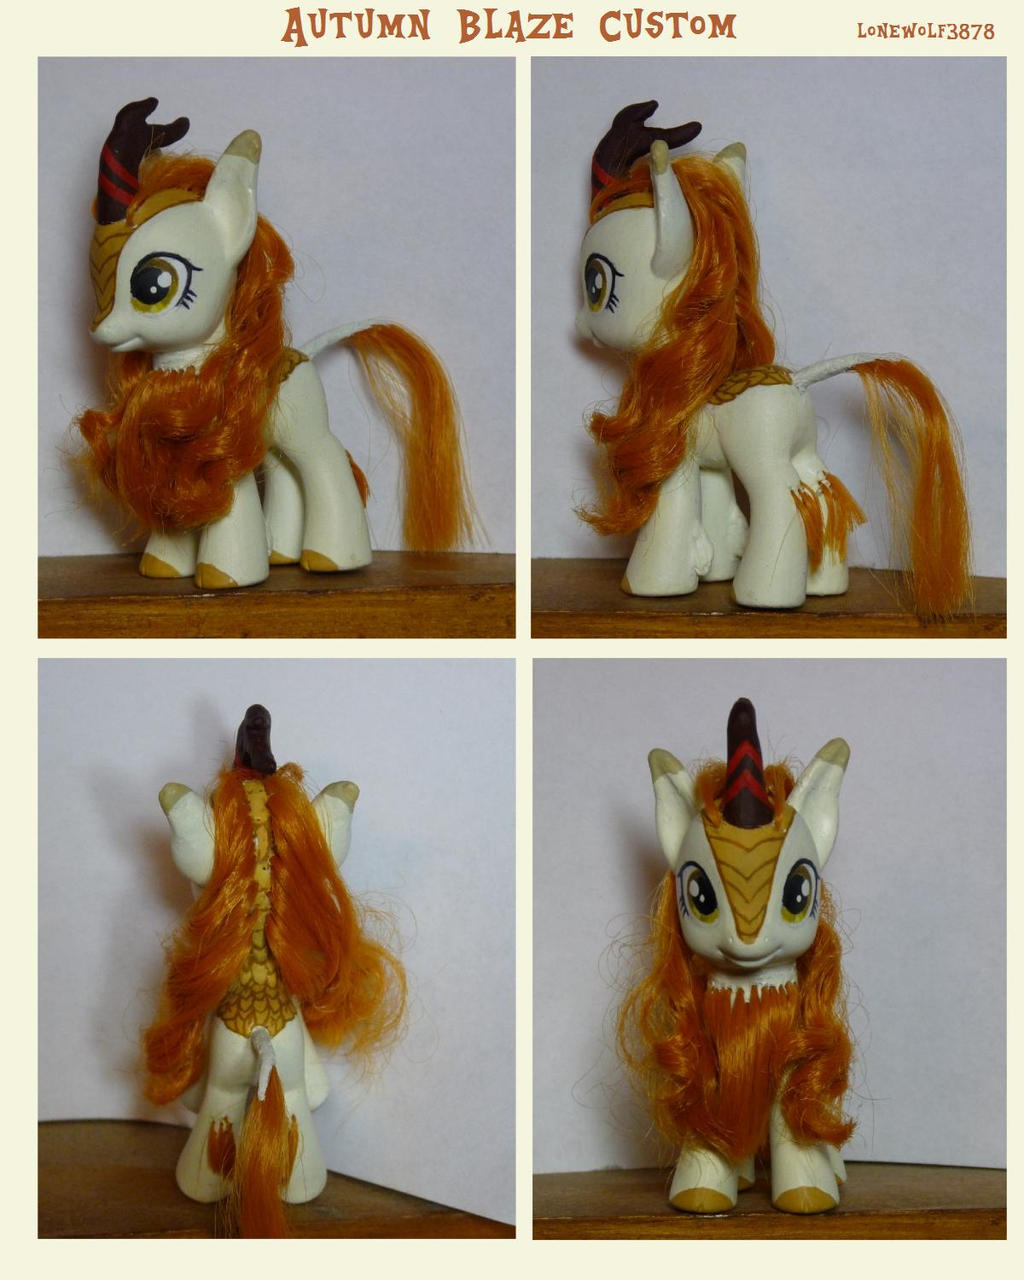 Autumn Blaze Brushable  Custom by lonewolf3878